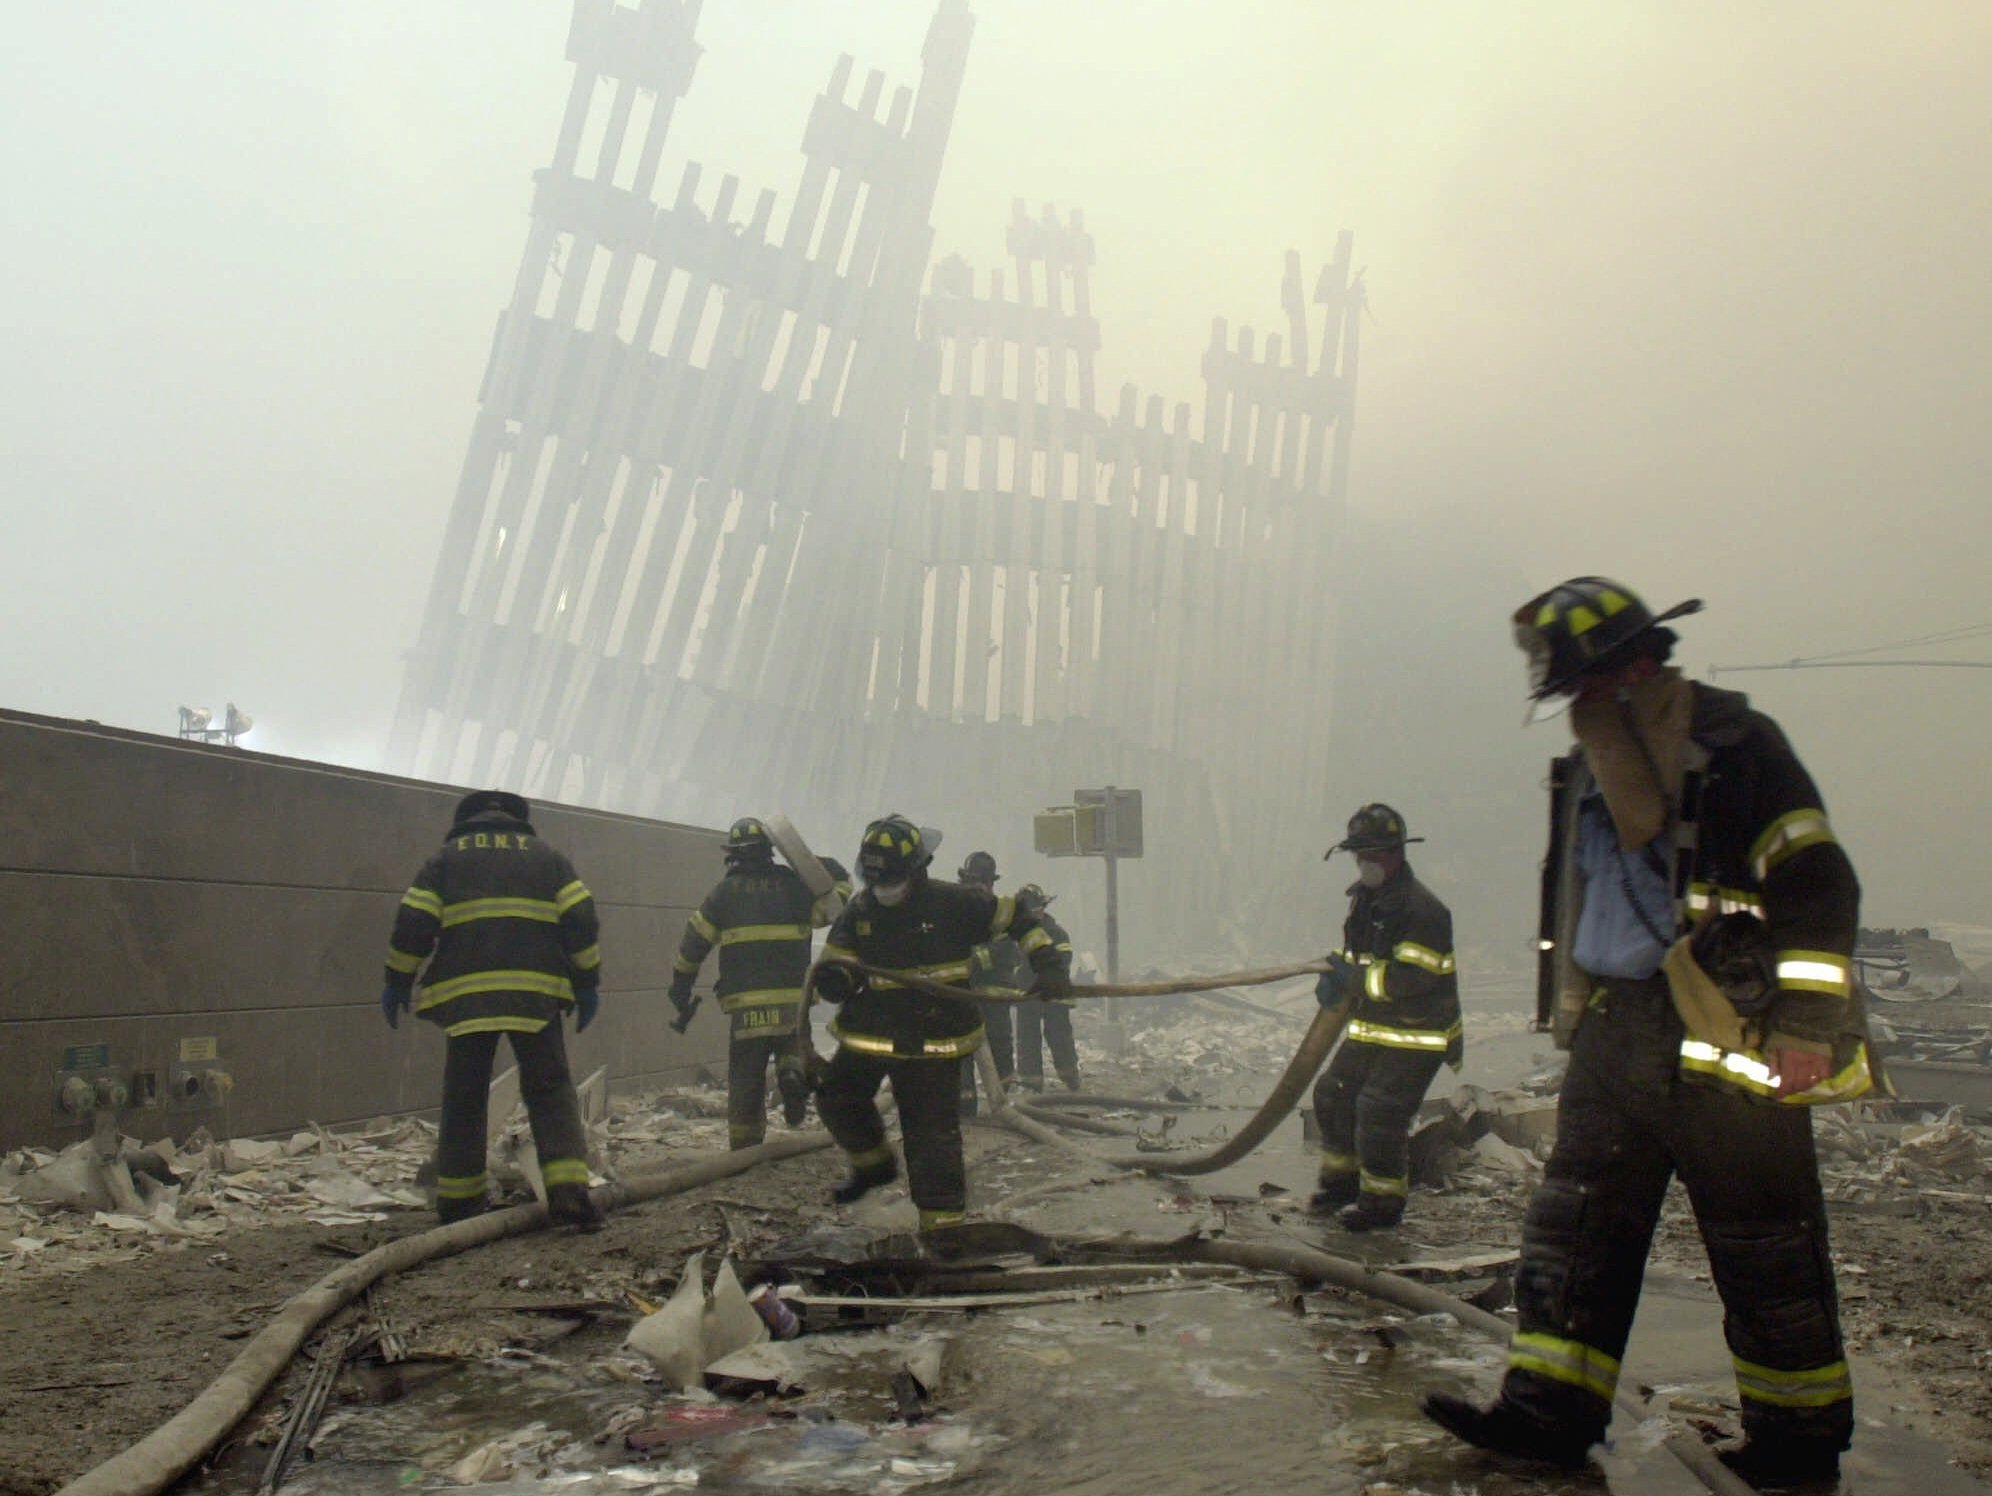 New York City firefighters work amid debris on Cortlandt St. after the terrorist attacks on Sept. 11, 2001